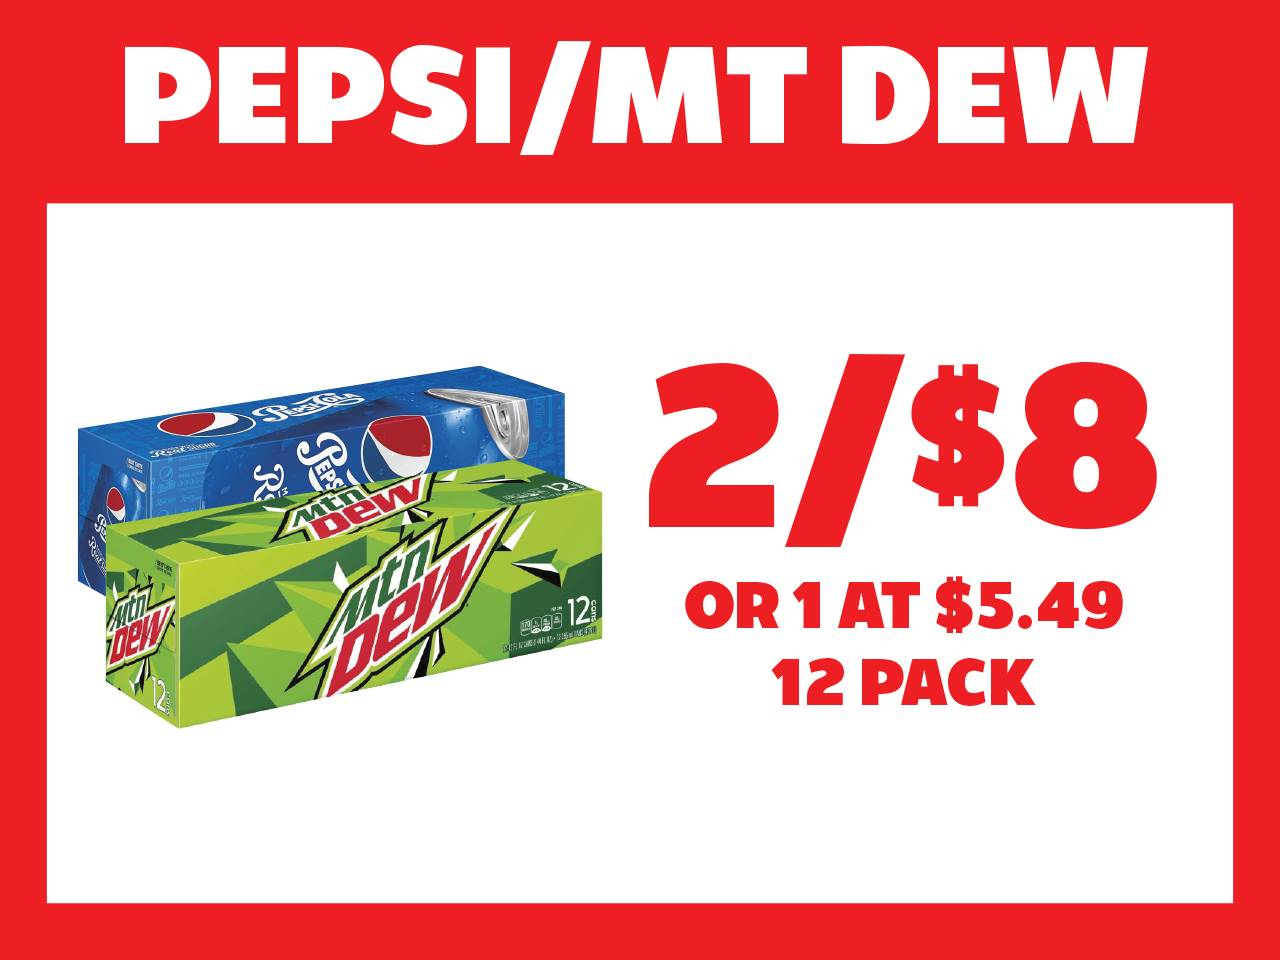 Pepsi or Mt. Dew 12 Pack 2 for $8 or 1 at $5.49